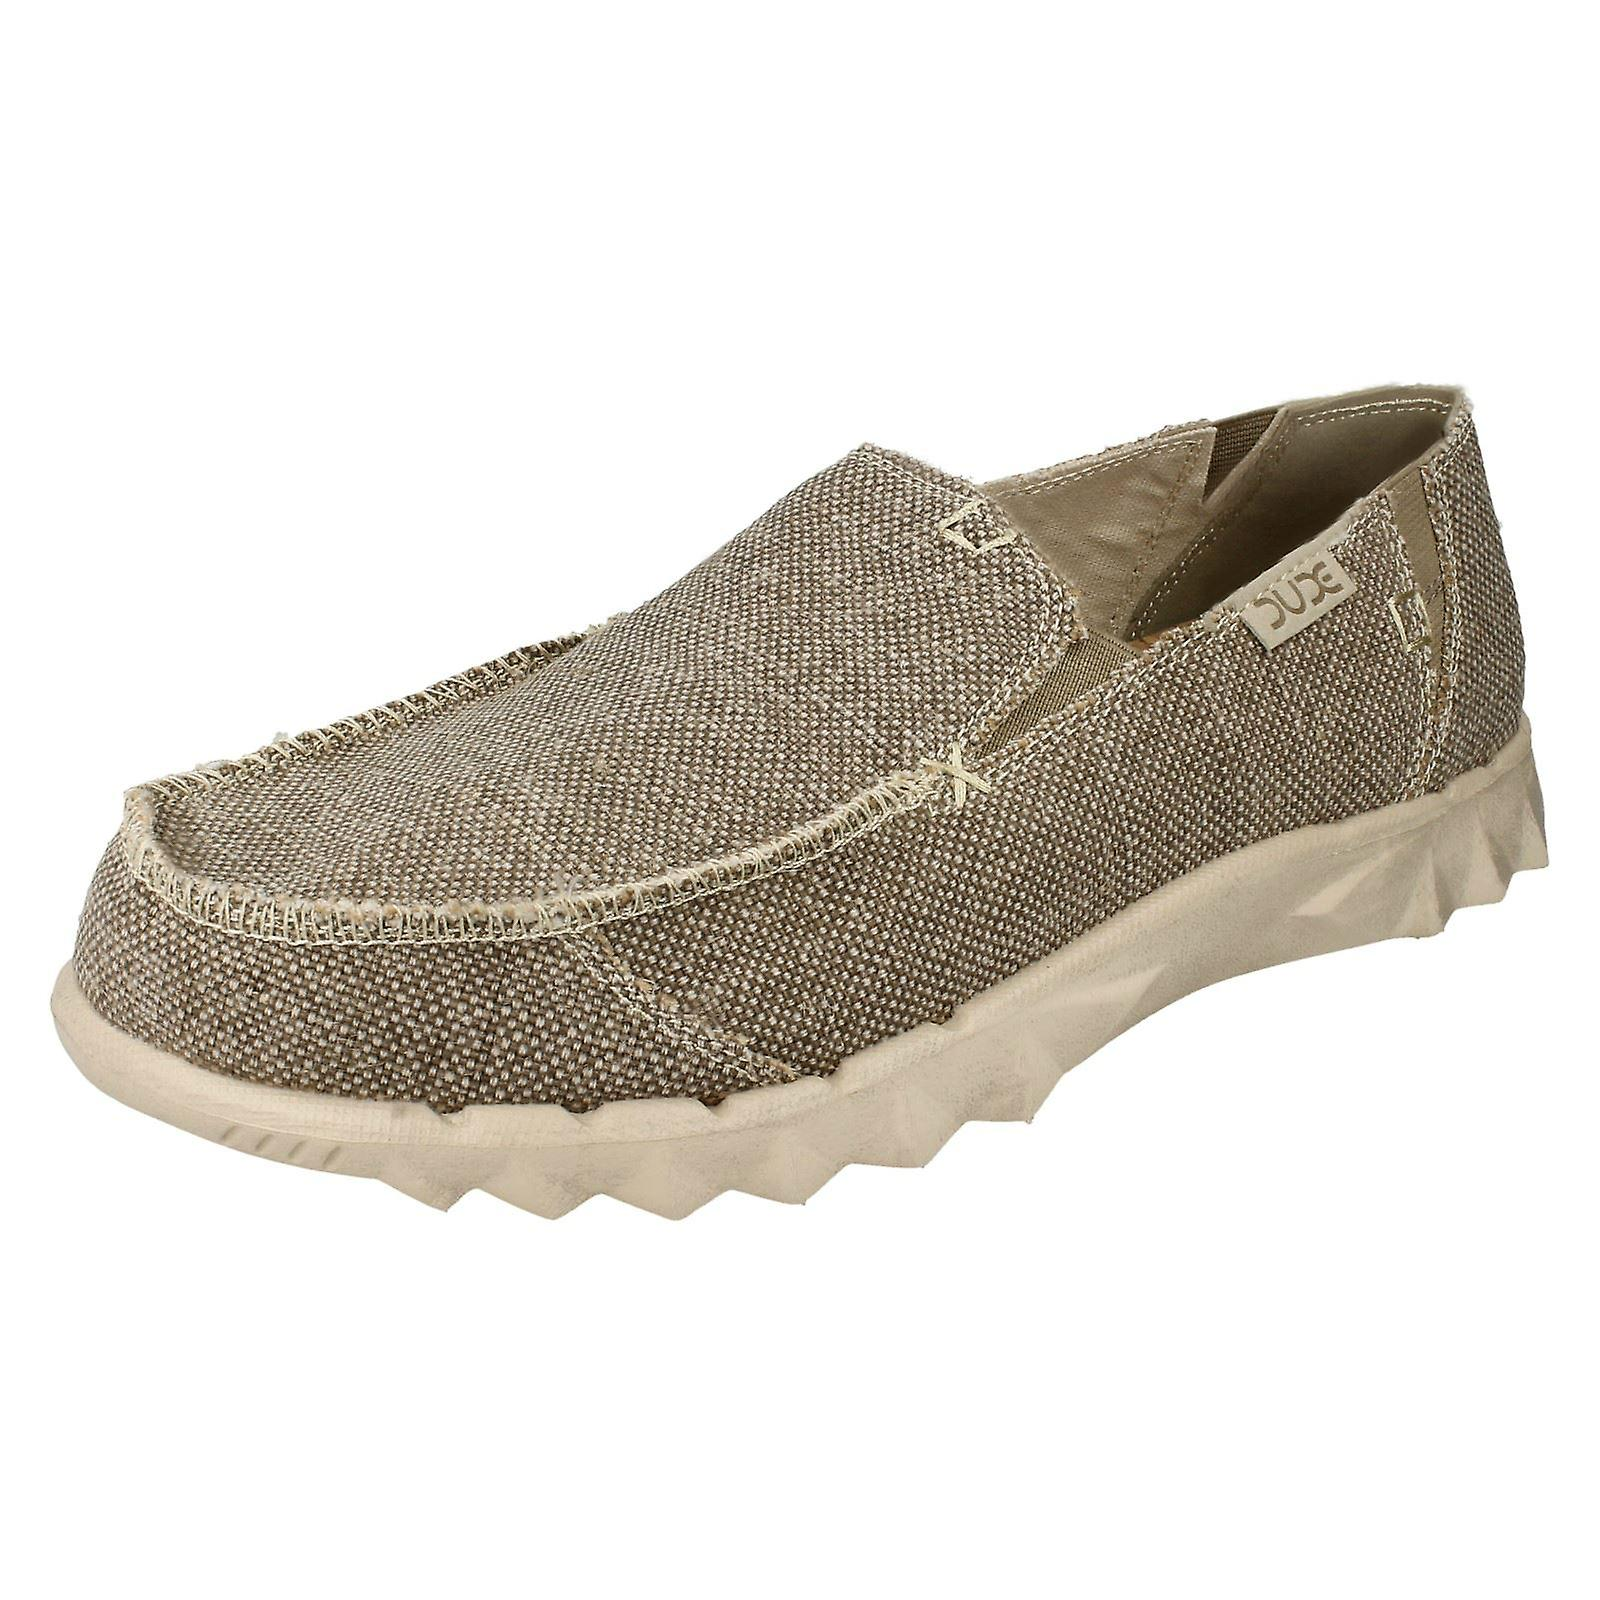 Mens Hey Dude Casual Shoes Farty Braided - Tundra Tundra Tundra Textile - UK Size 8 - EU Size 42 - US Size 9 52439e